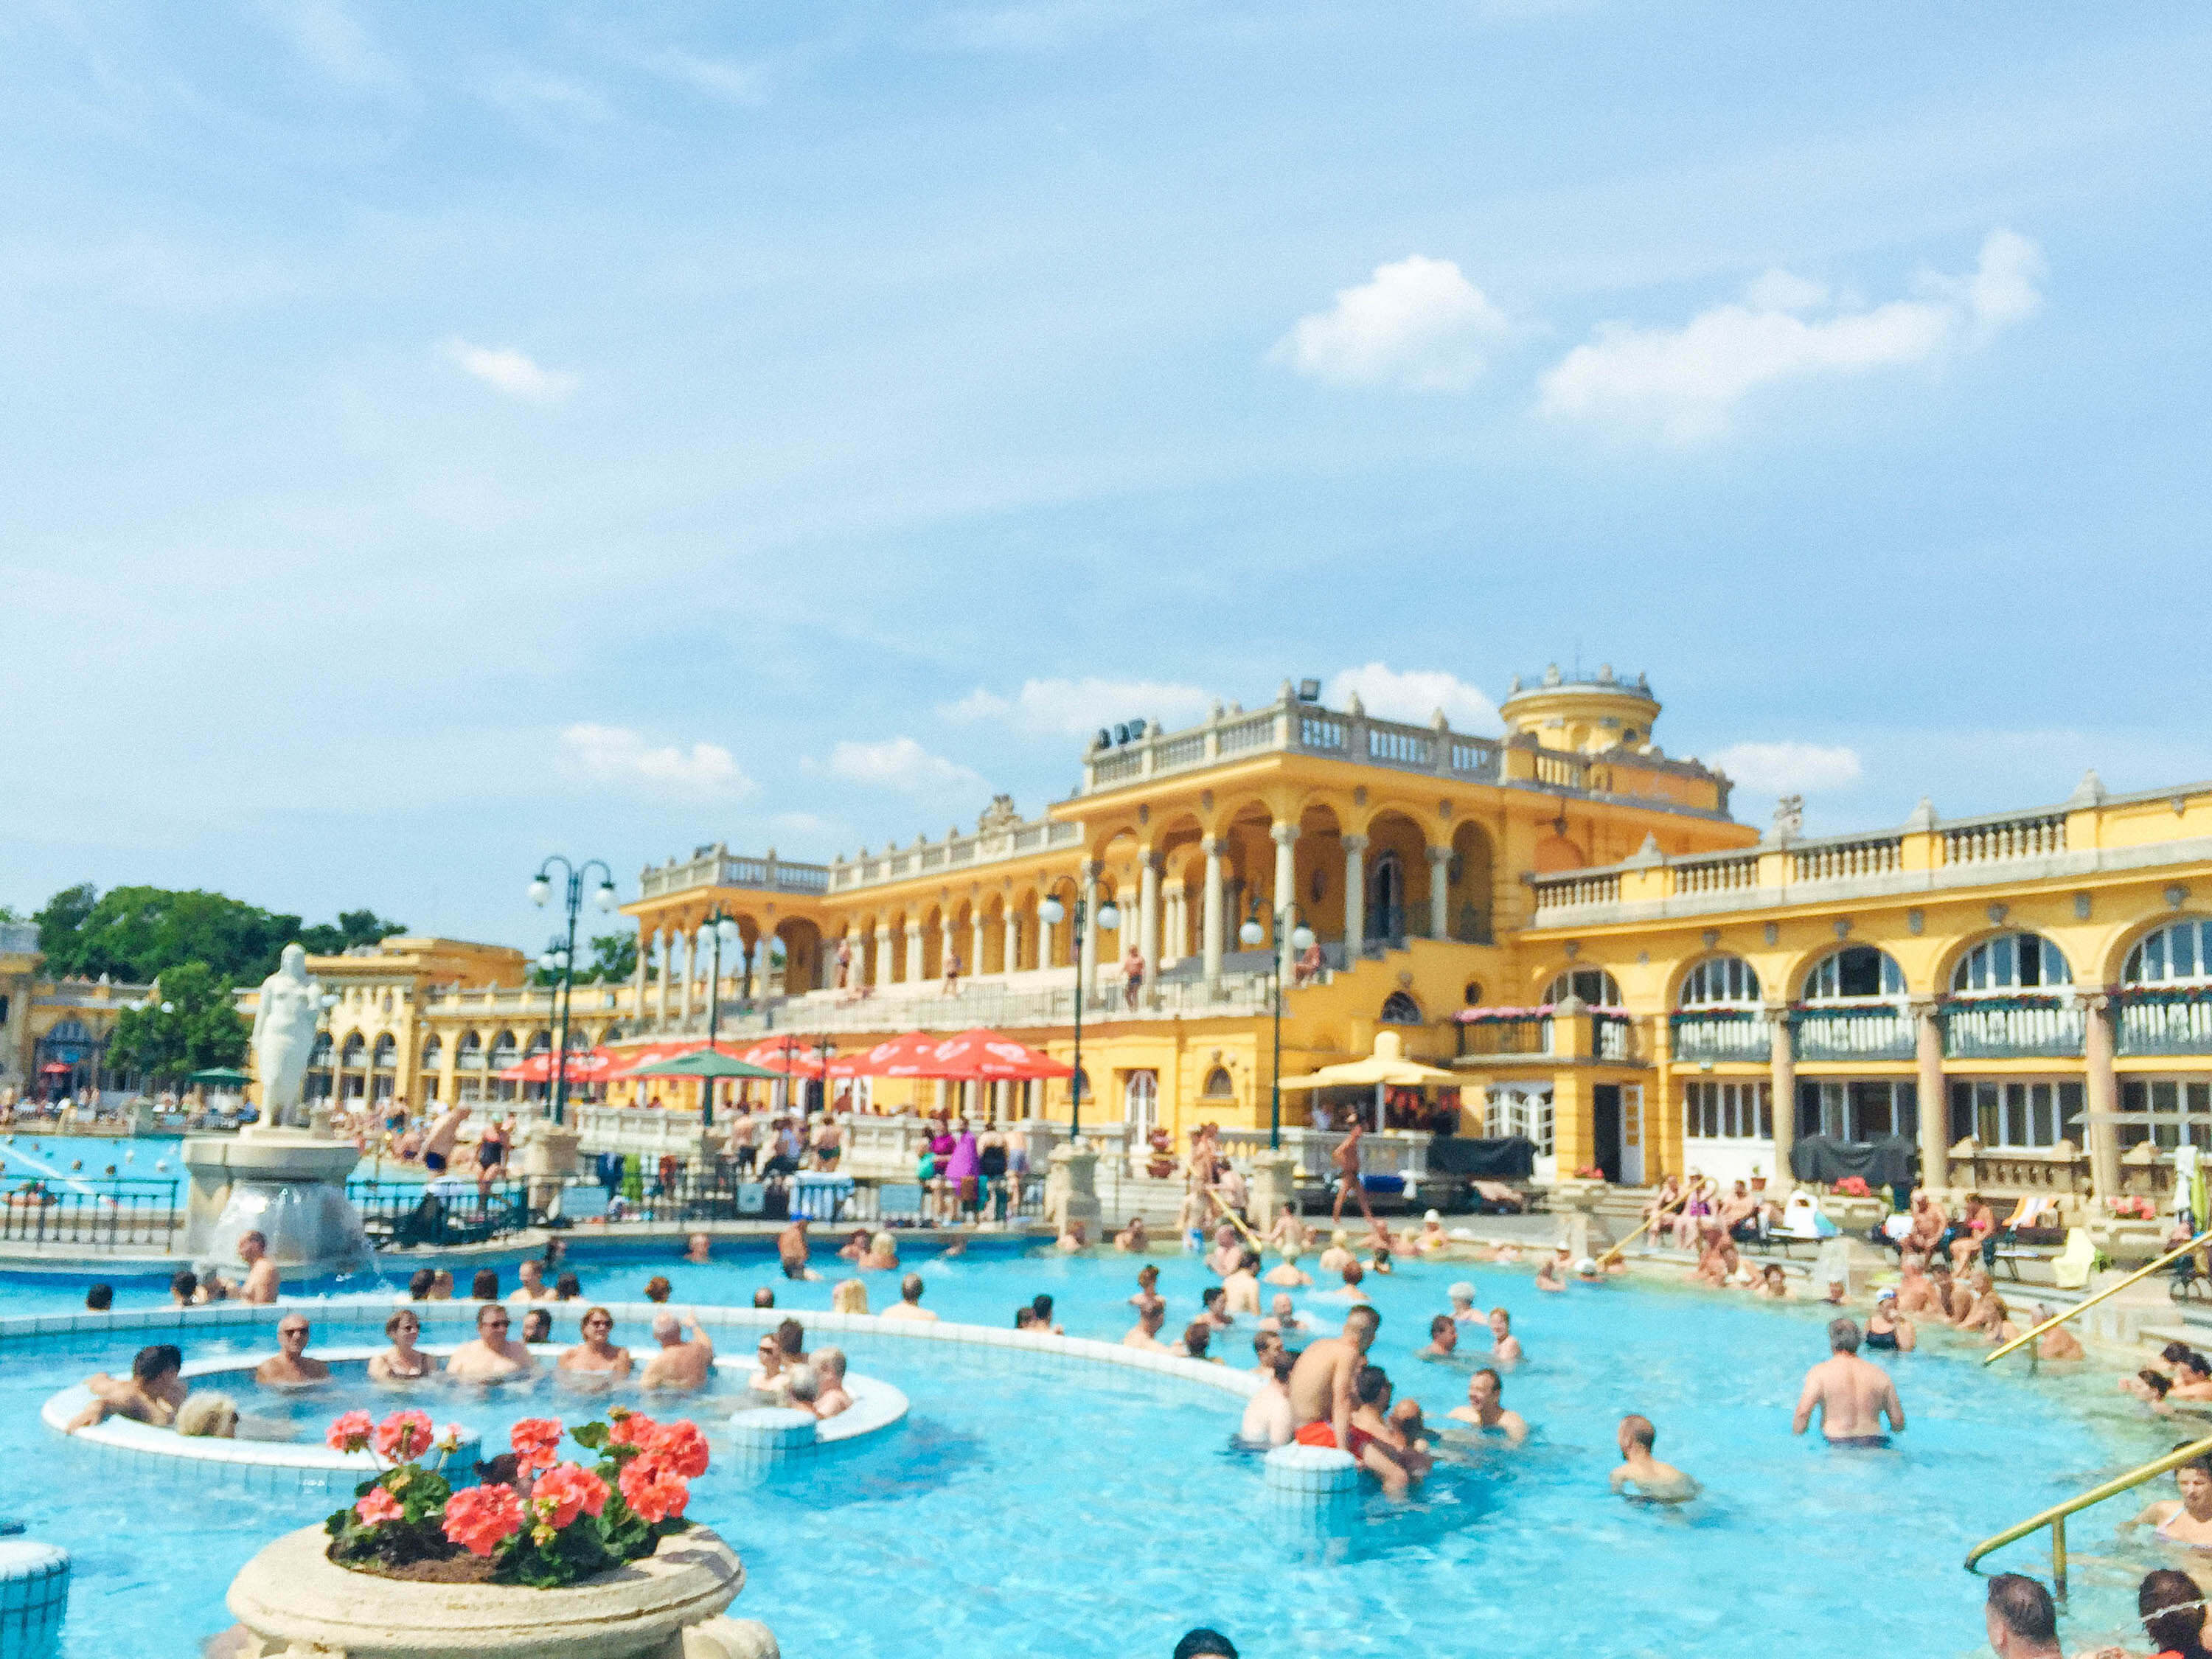 Friendliest countries for black travelers - Schezenyi bath